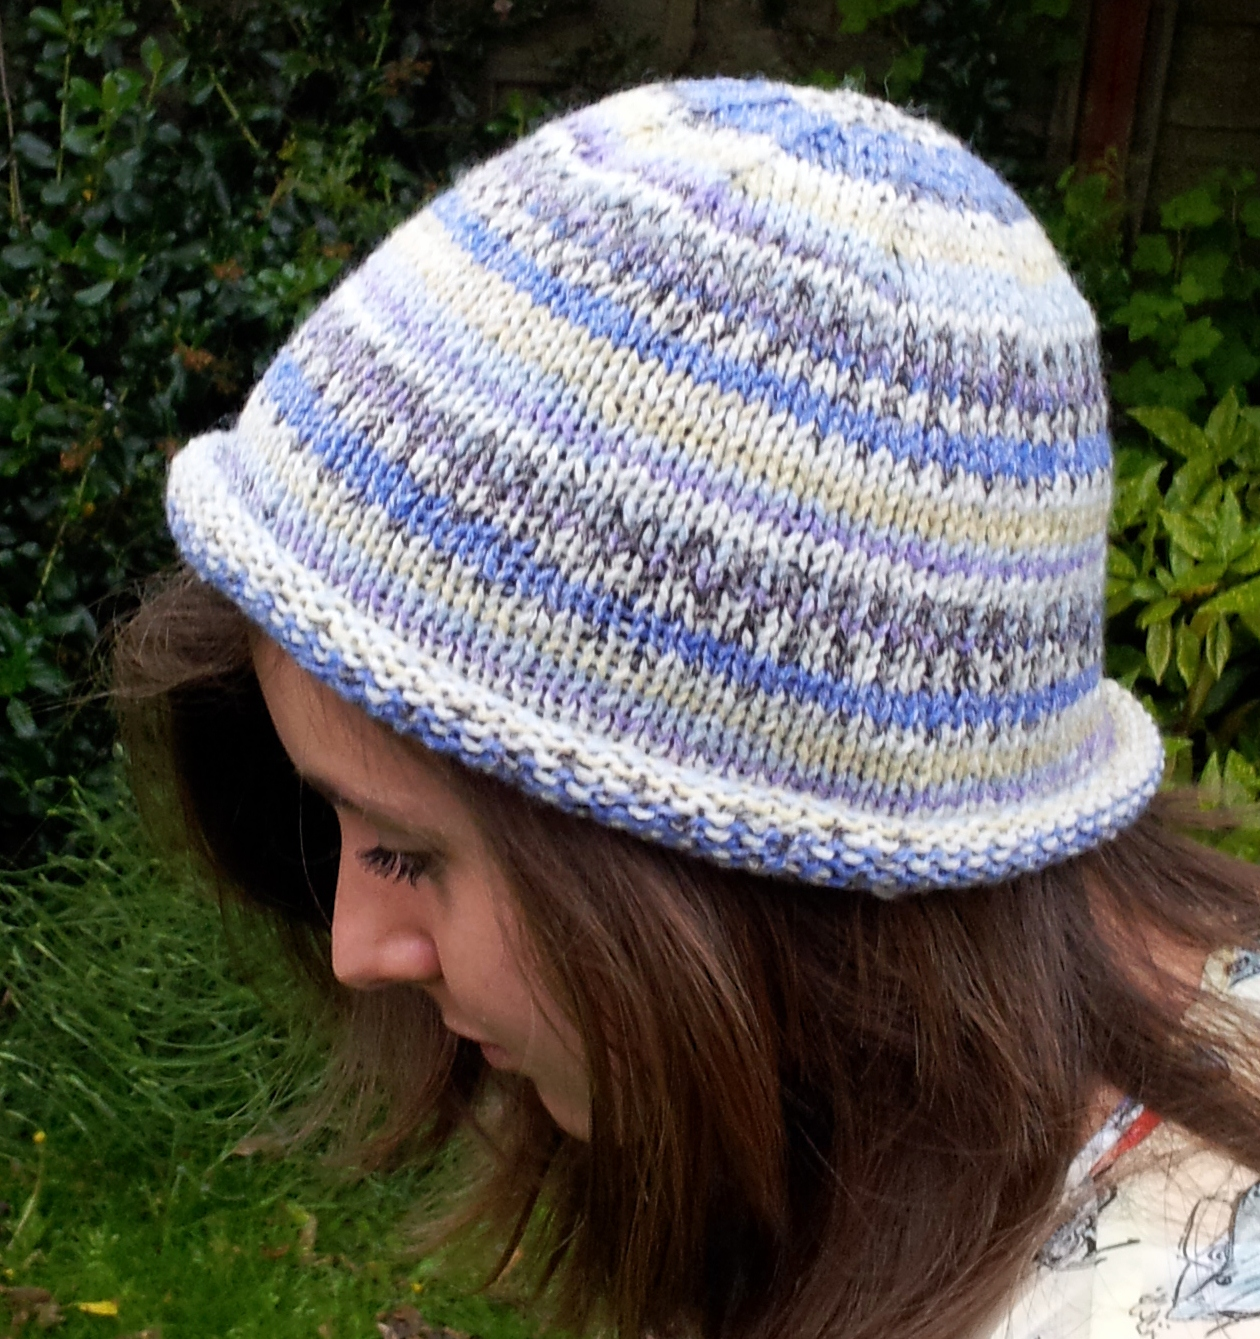 Knit Hat Pattern Free Brim : Knitted Rolled Brim Beanie Hat   Free beginners pattern ...